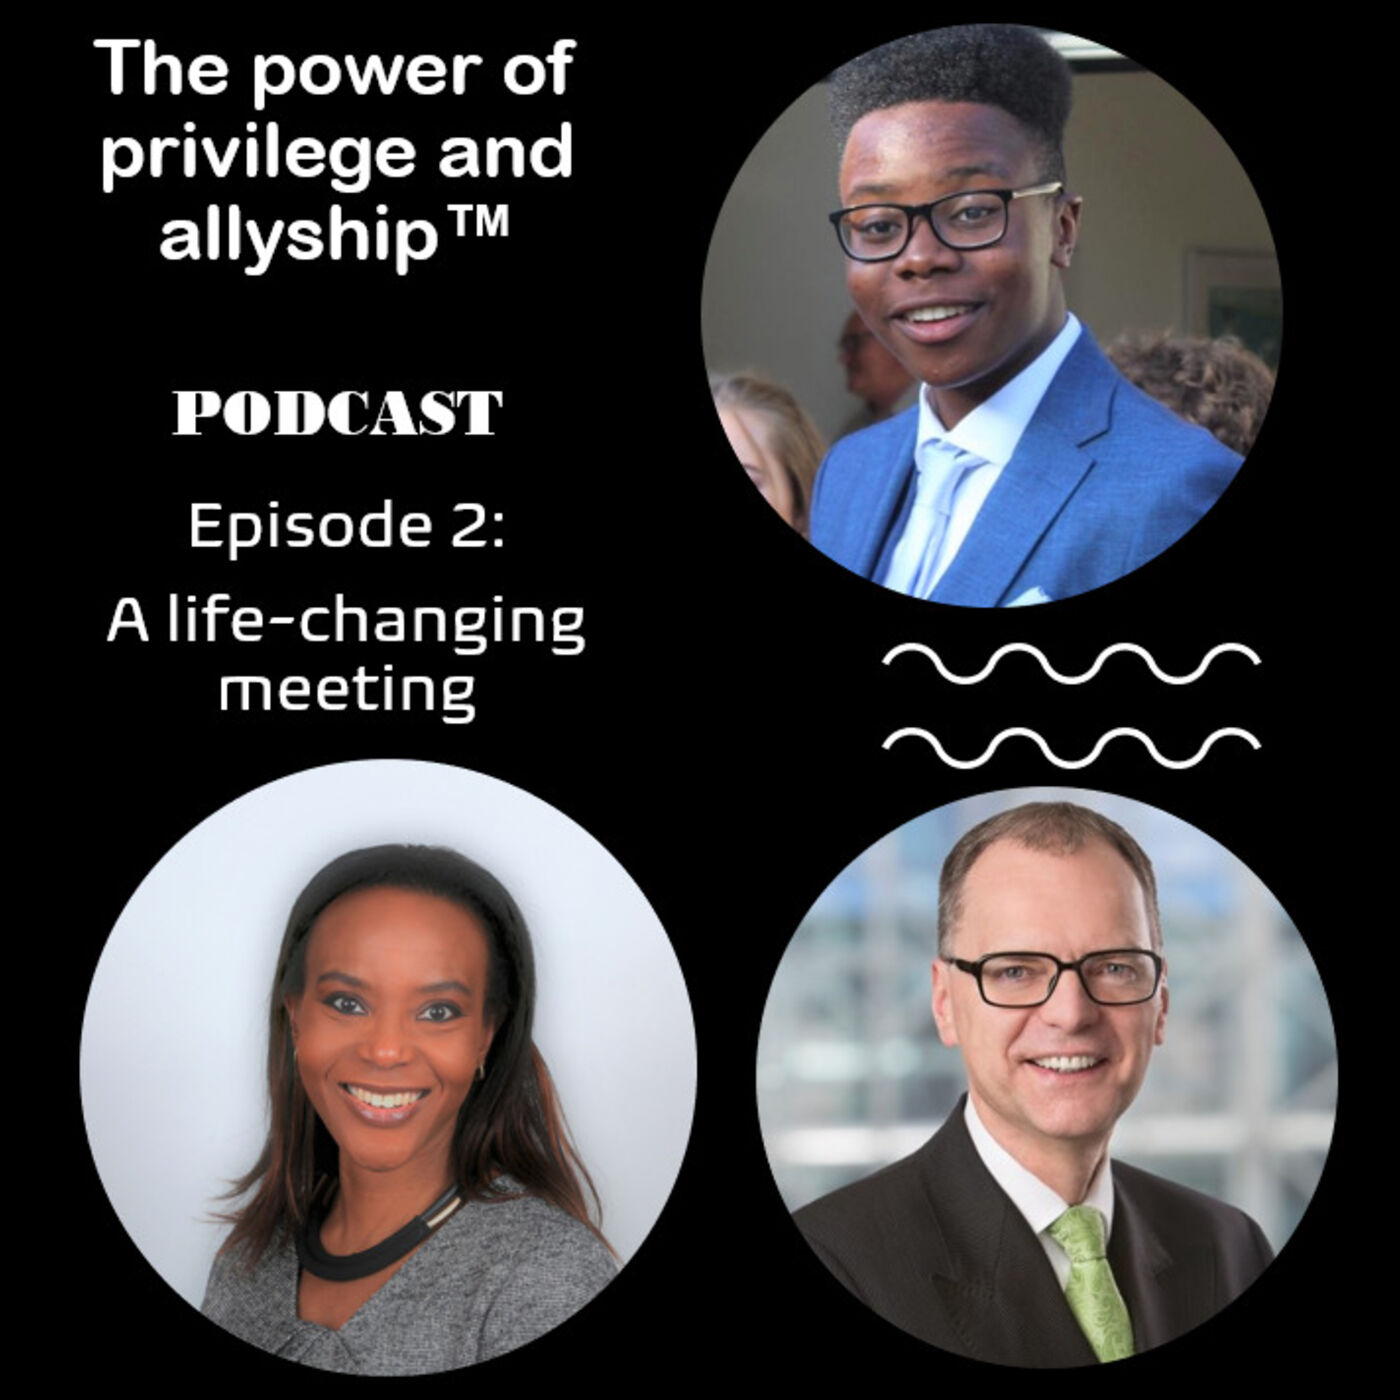 S1 Ep 2: A life-changing meeting feat. Nicholas Cheffings and Max Abimbola